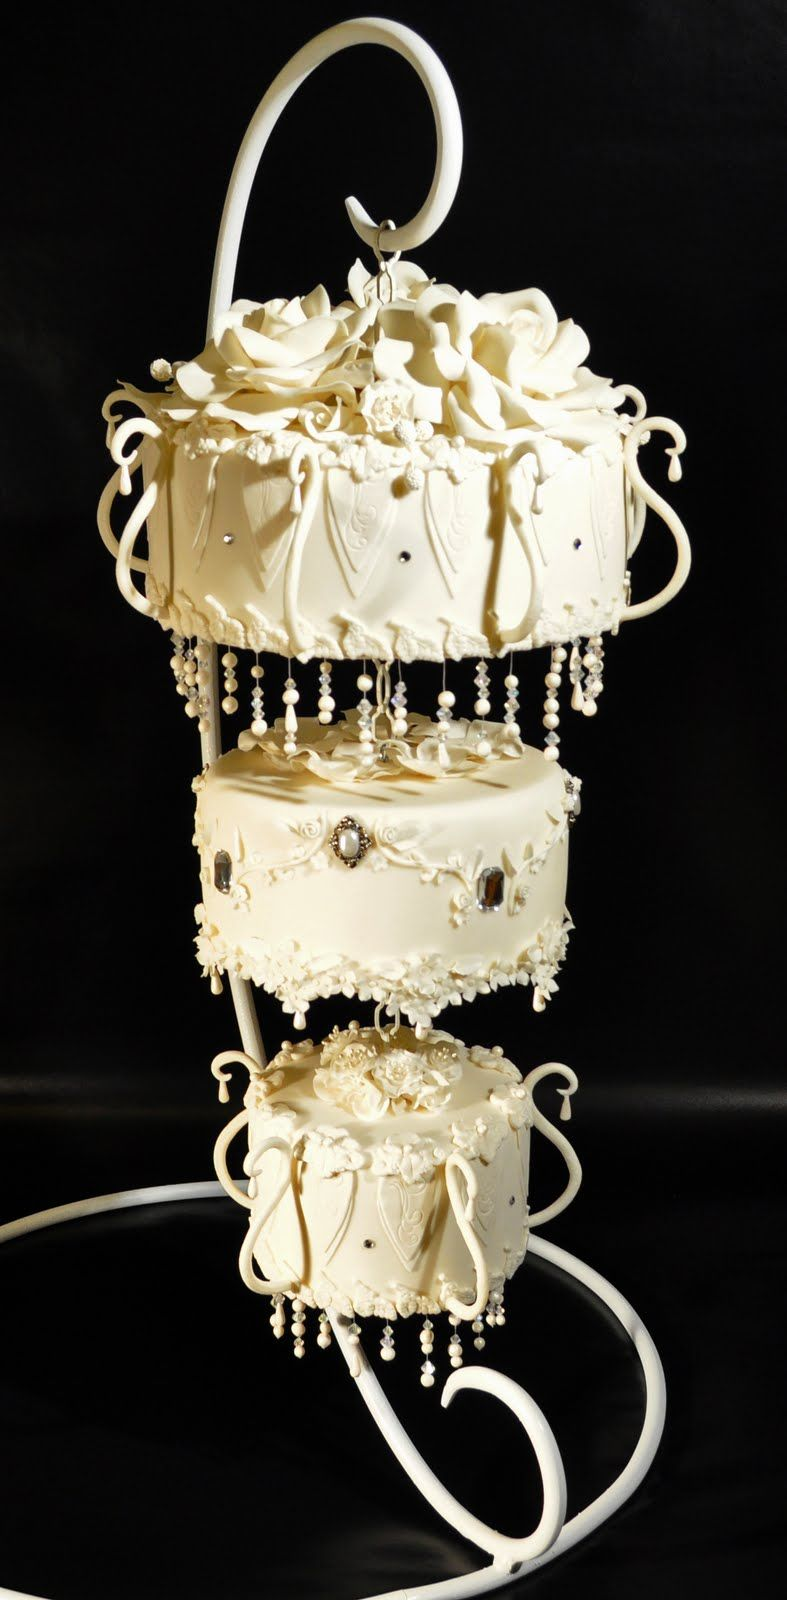 A chandelier cake she has several pictures of her assembling it a chandelier cake she has several pictures of her assembling it judys cakes arubaitofo Choice Image